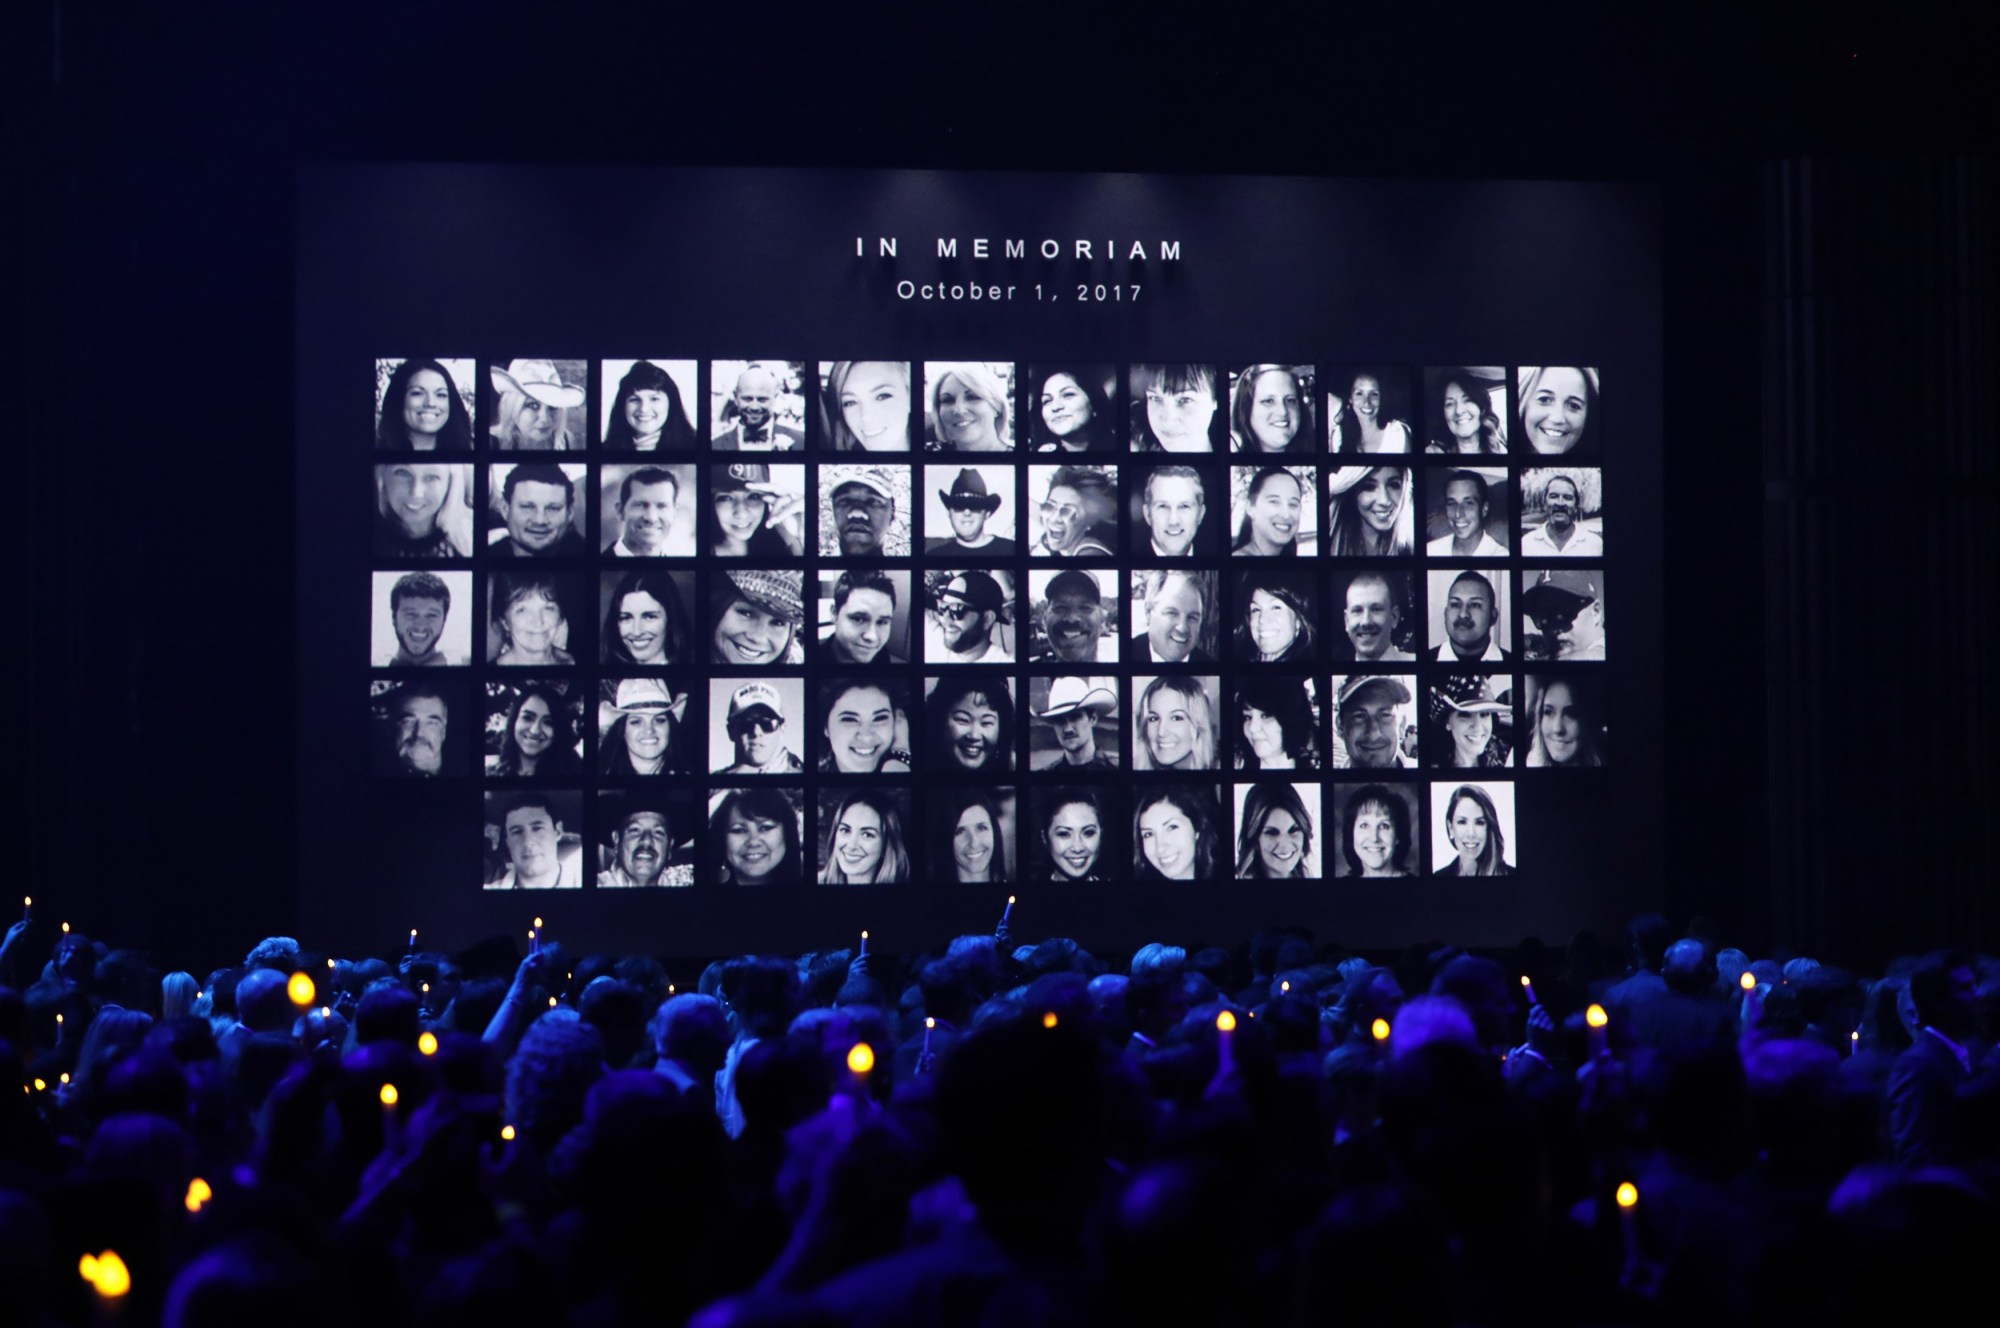 Images of those killed in the Oct. 1 mass shooting in Las Vegas are shown during the in memoriam segment of the 51st Country Music Association Awards show. | REUTERS